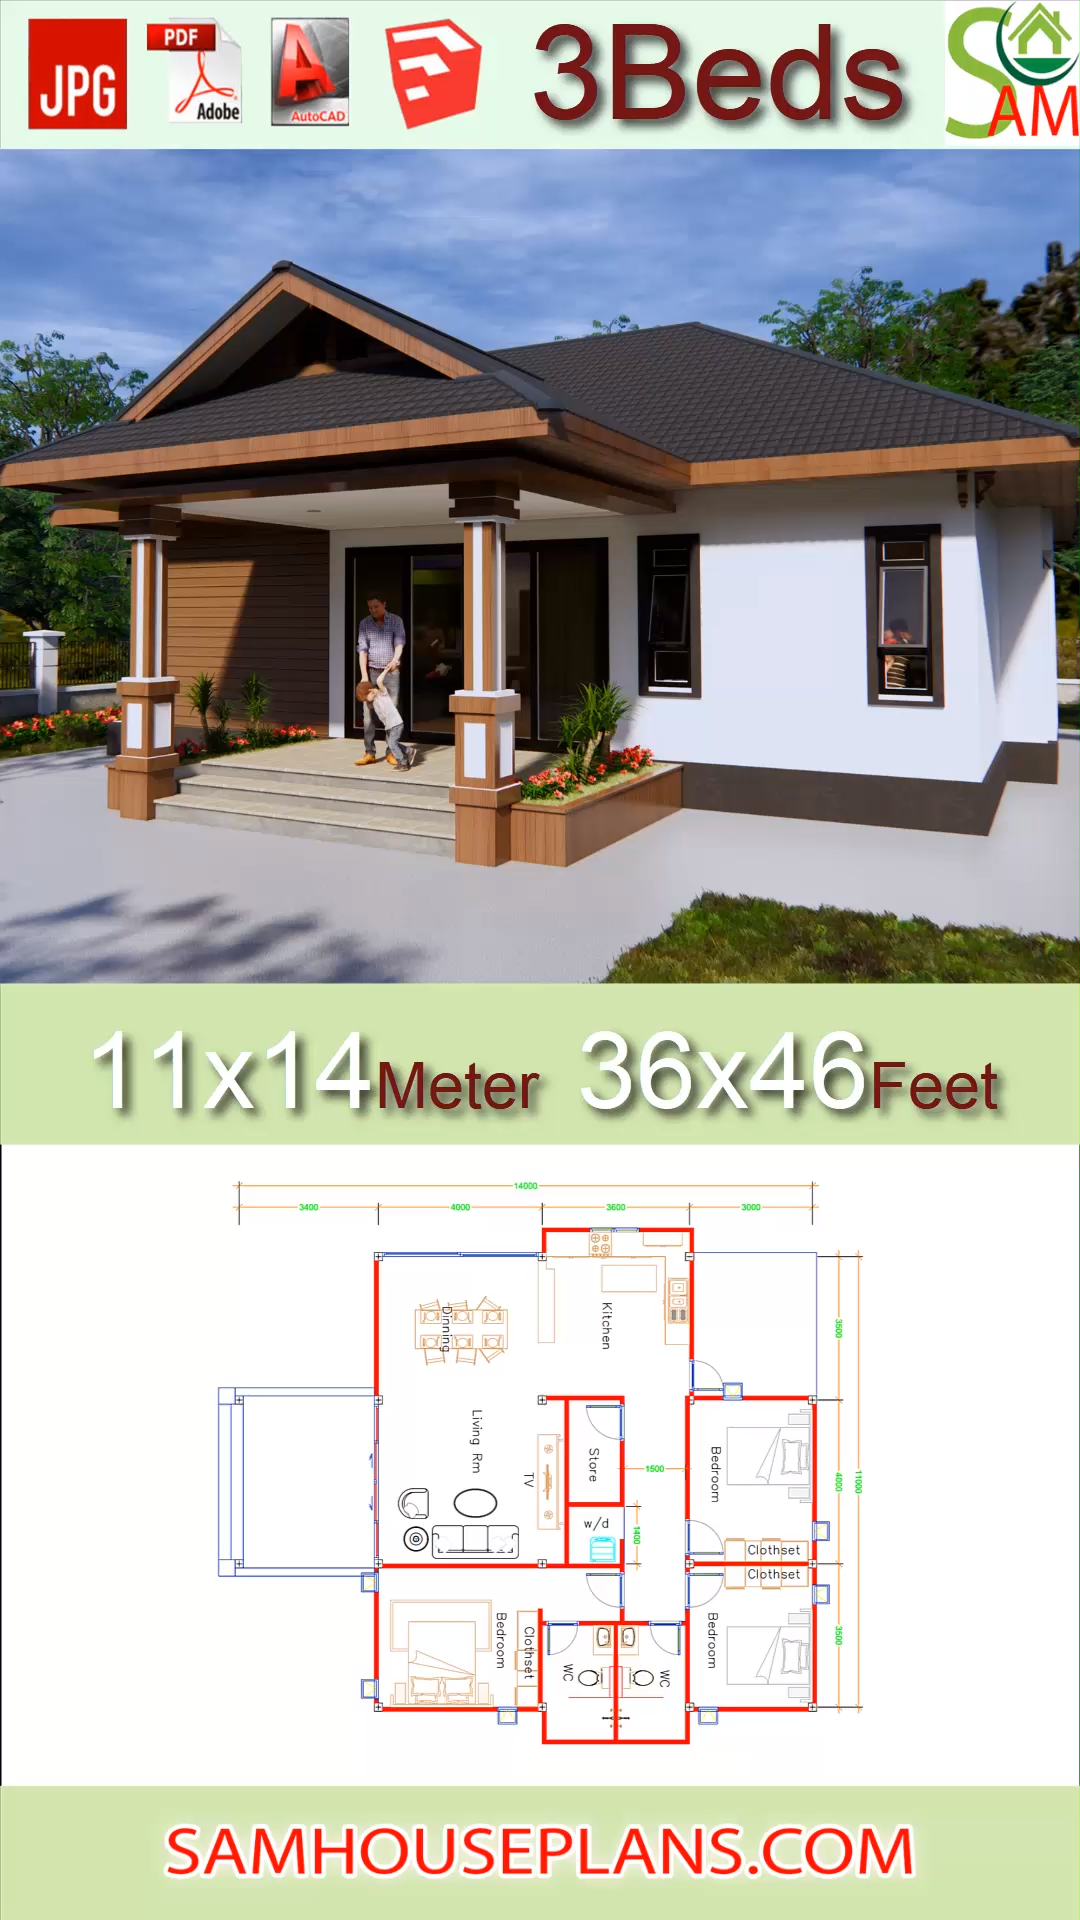 House Plans 11x14 With 3 Bedrooms Hip Roof 36x46 Feet Video In 2020 House Plans Bungalow Floor Plans Building Plans House